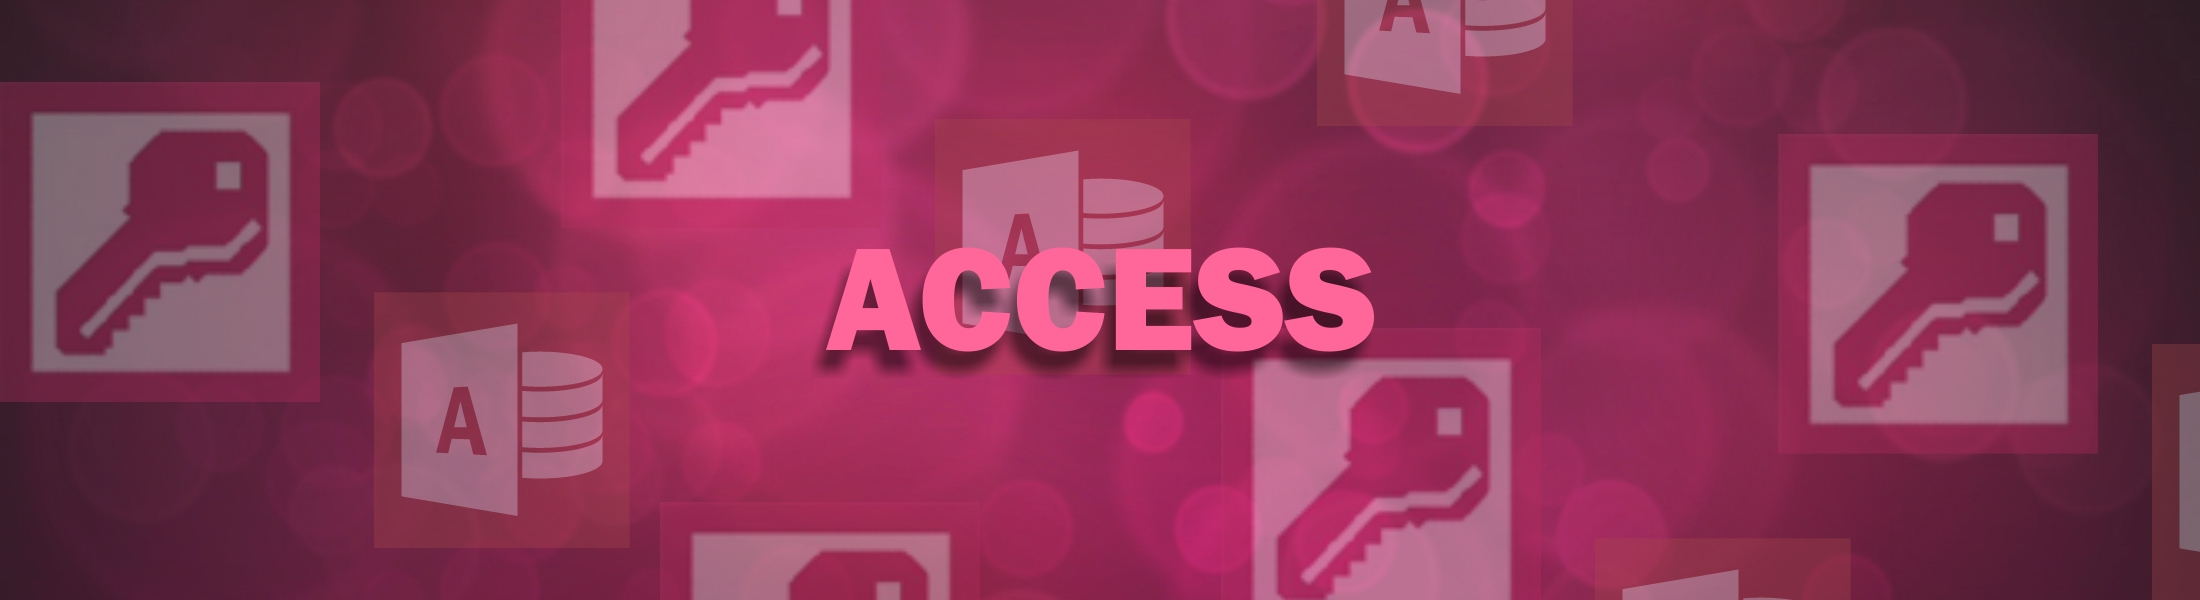 courese ms access